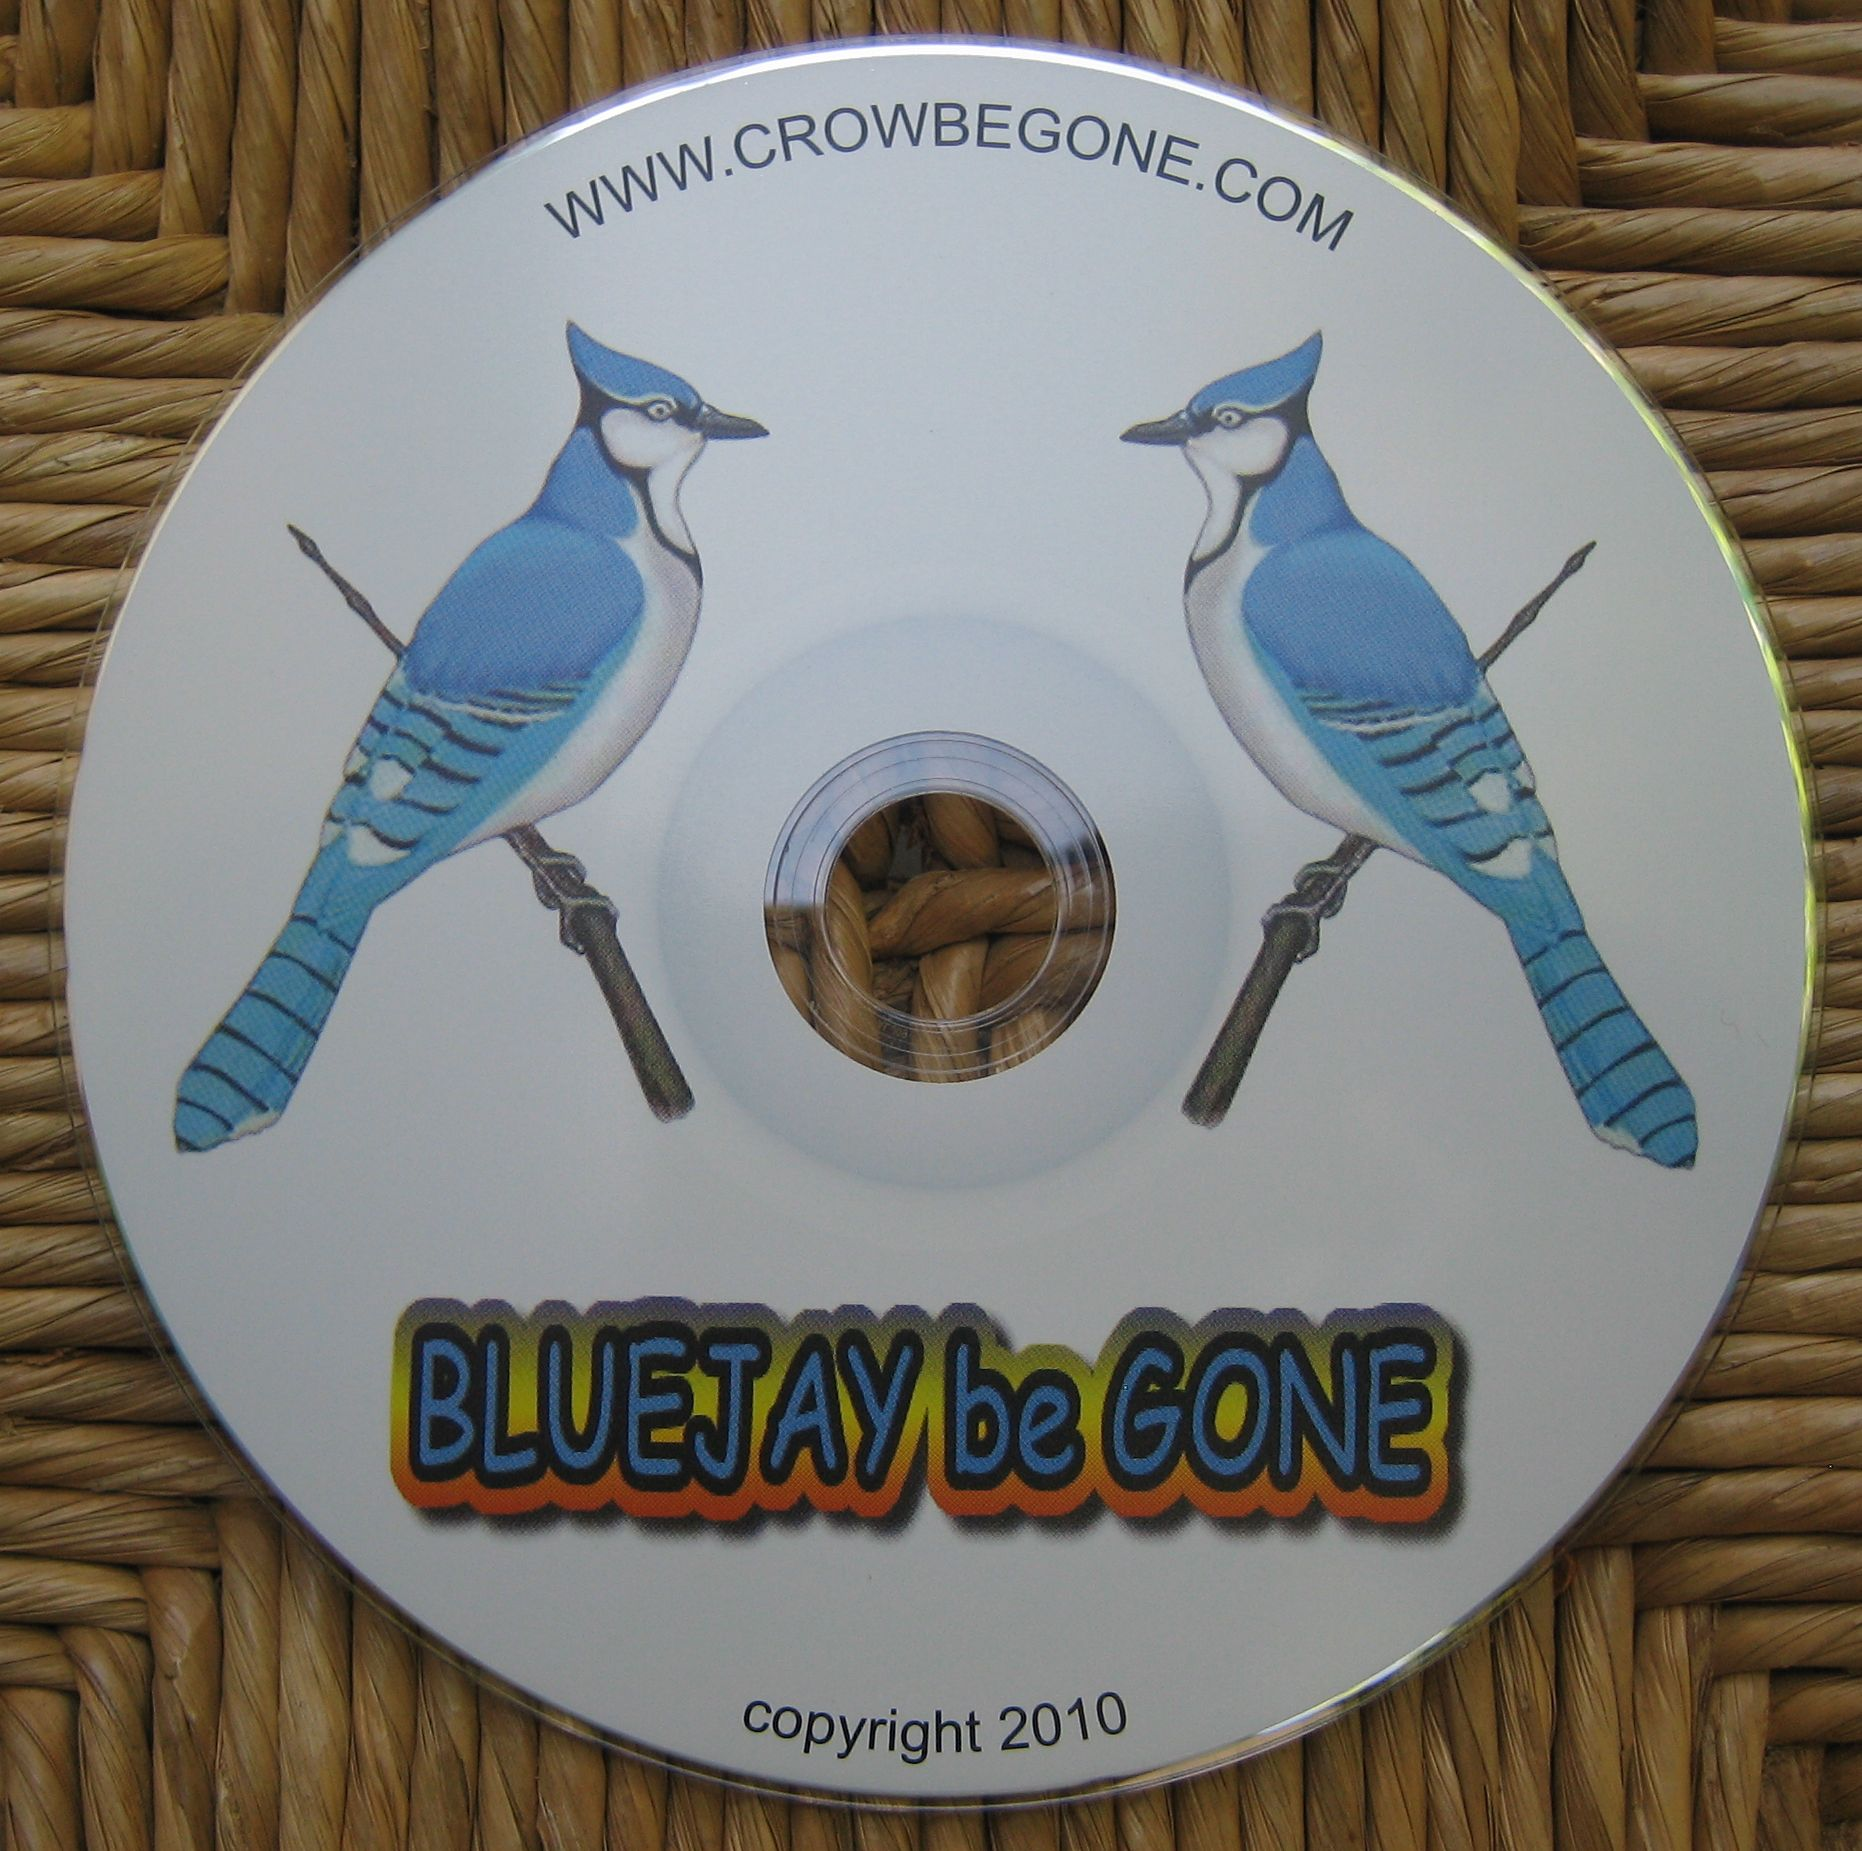 BlueJay be Gone